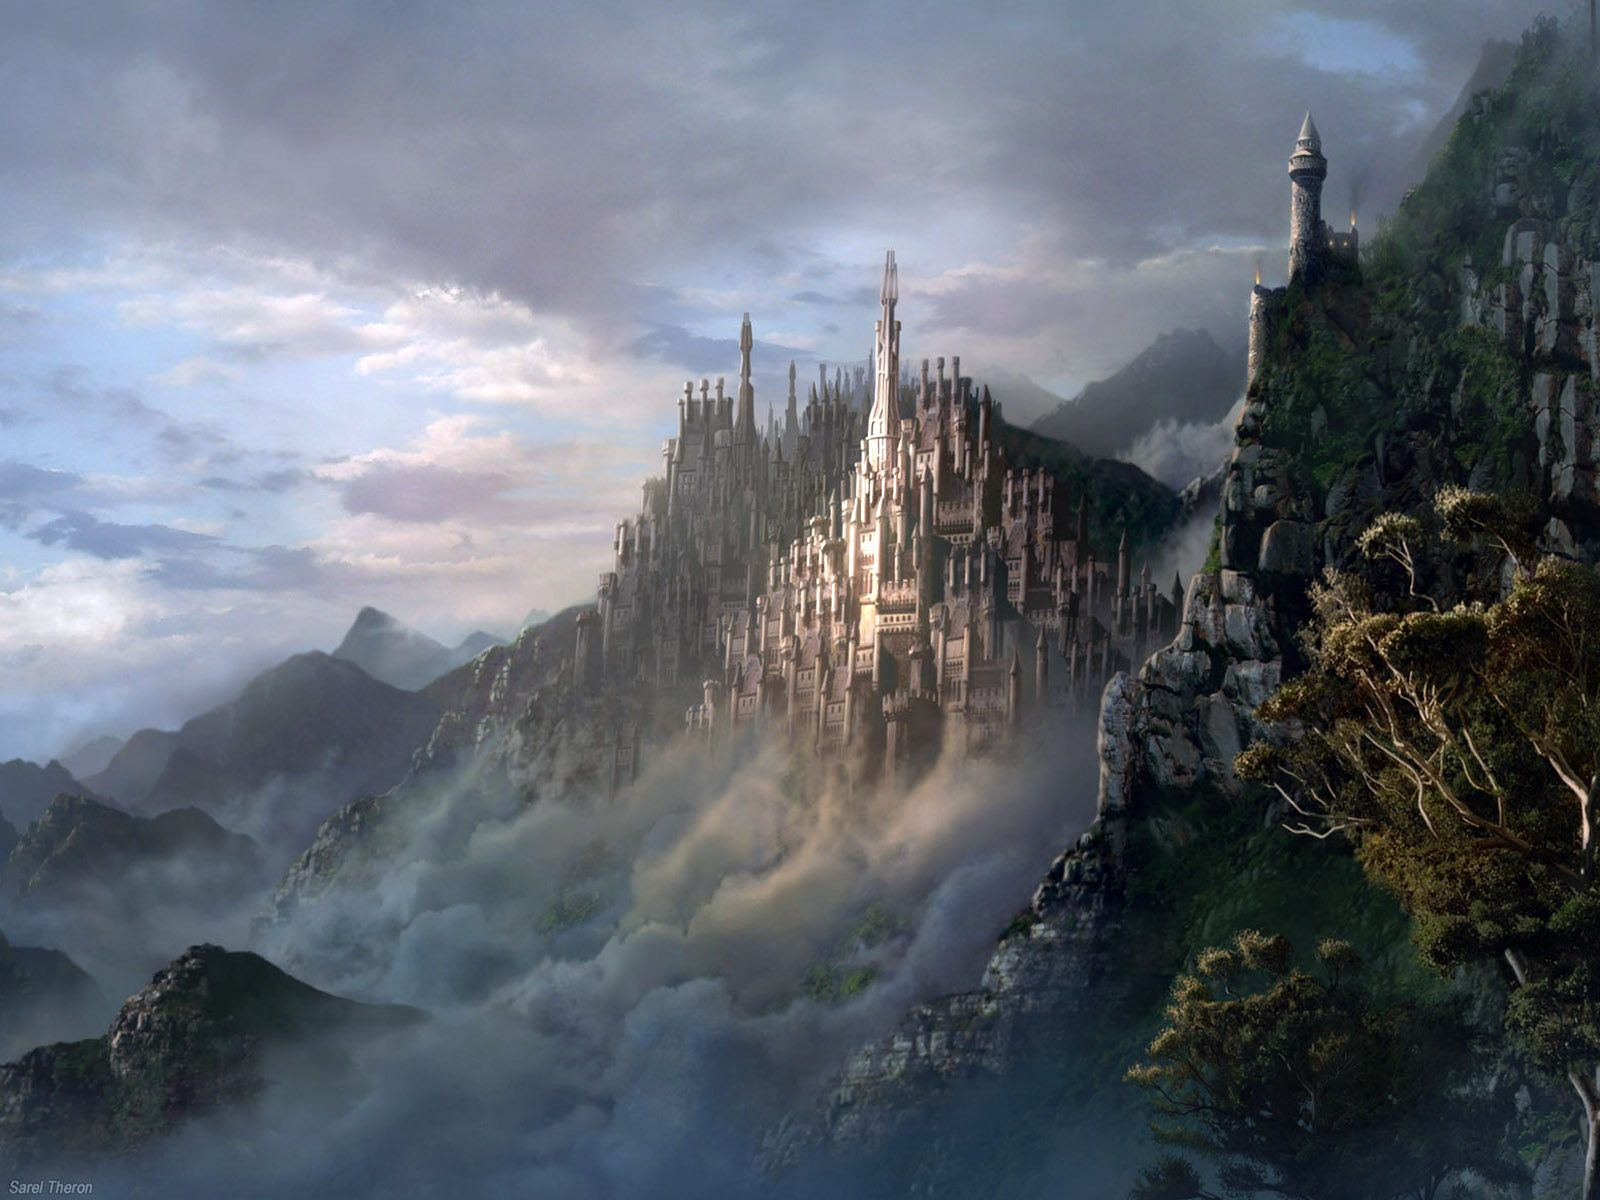 14 best murals images on pinterest | google search, anime fantasy